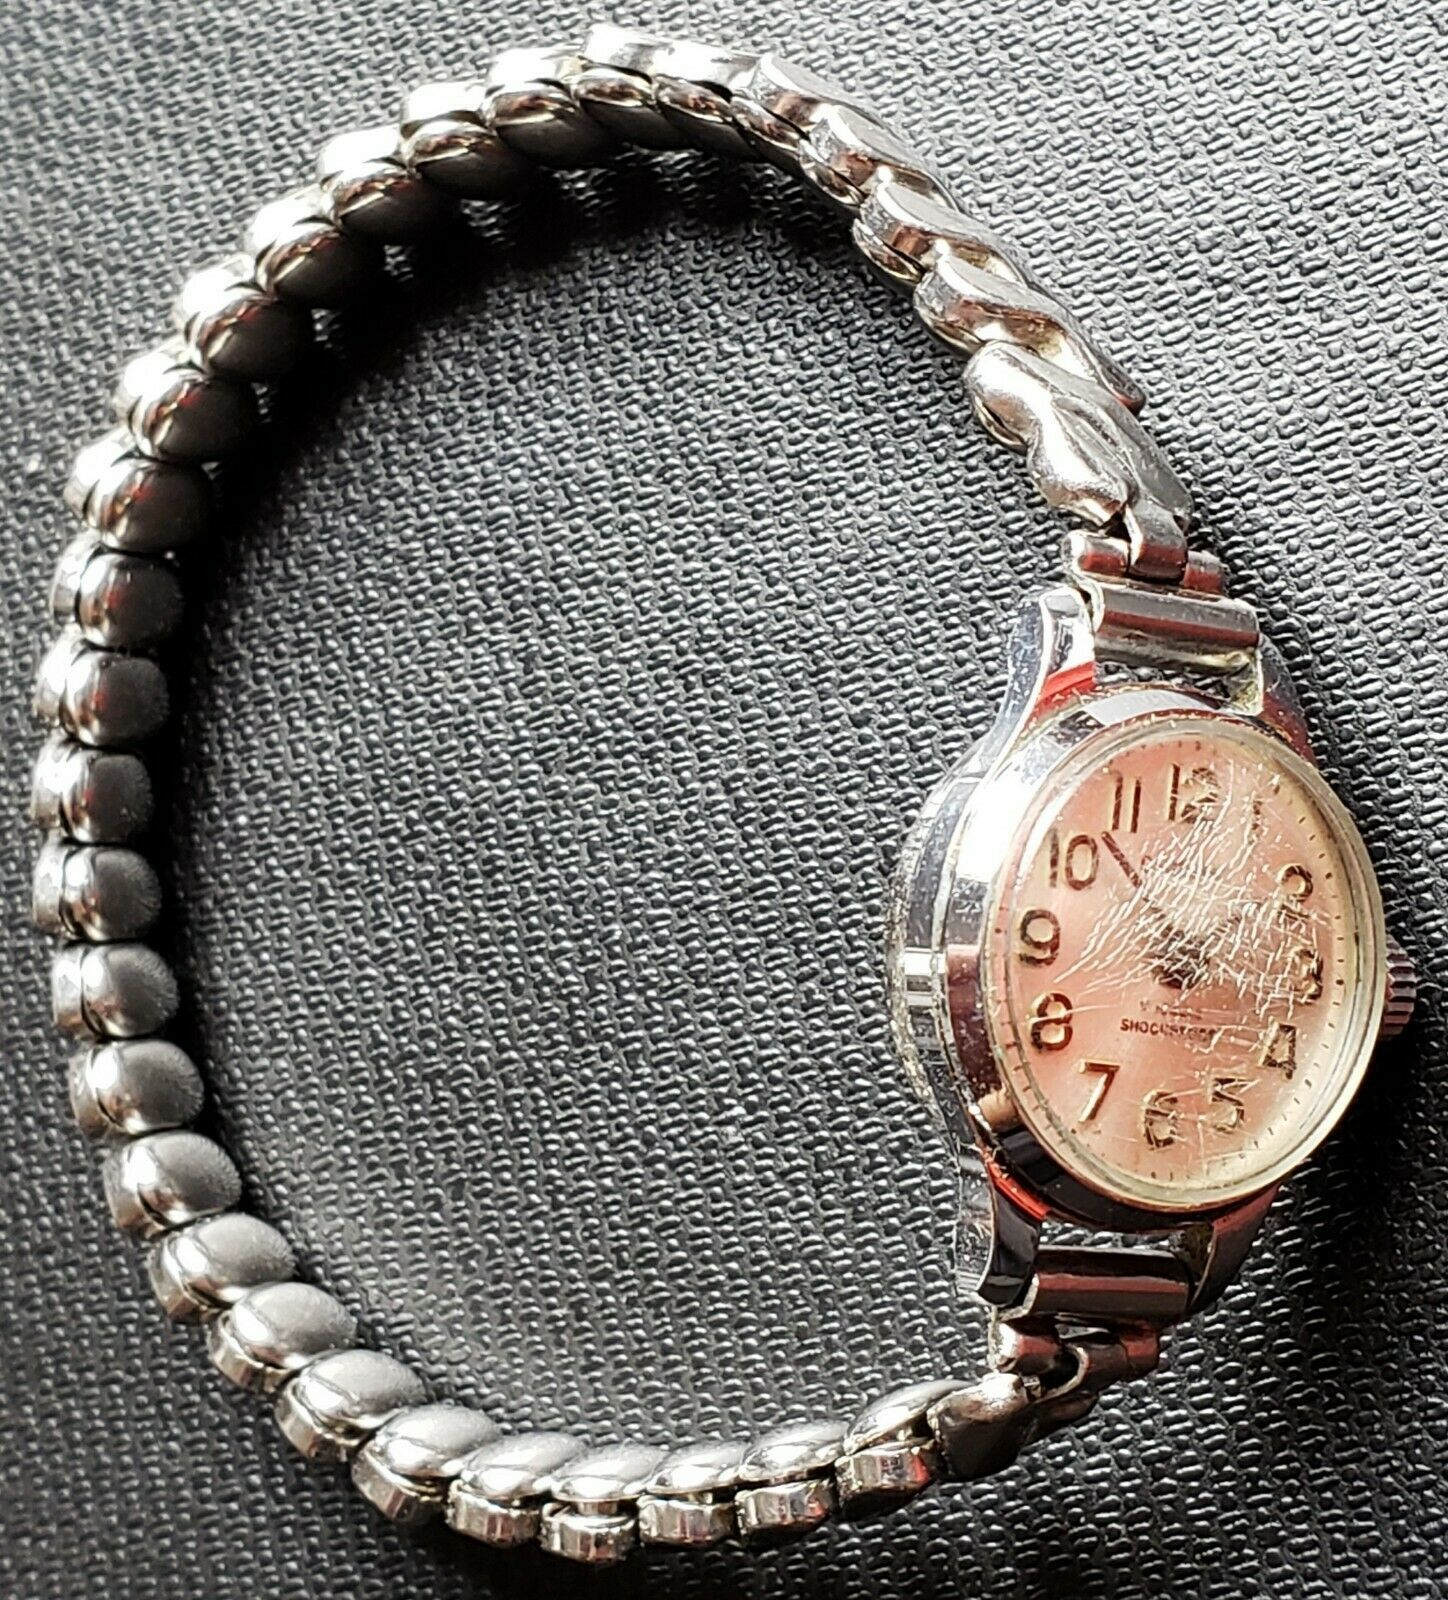 Vintage Cardinal 17 Jewels Women's Watch - Functional